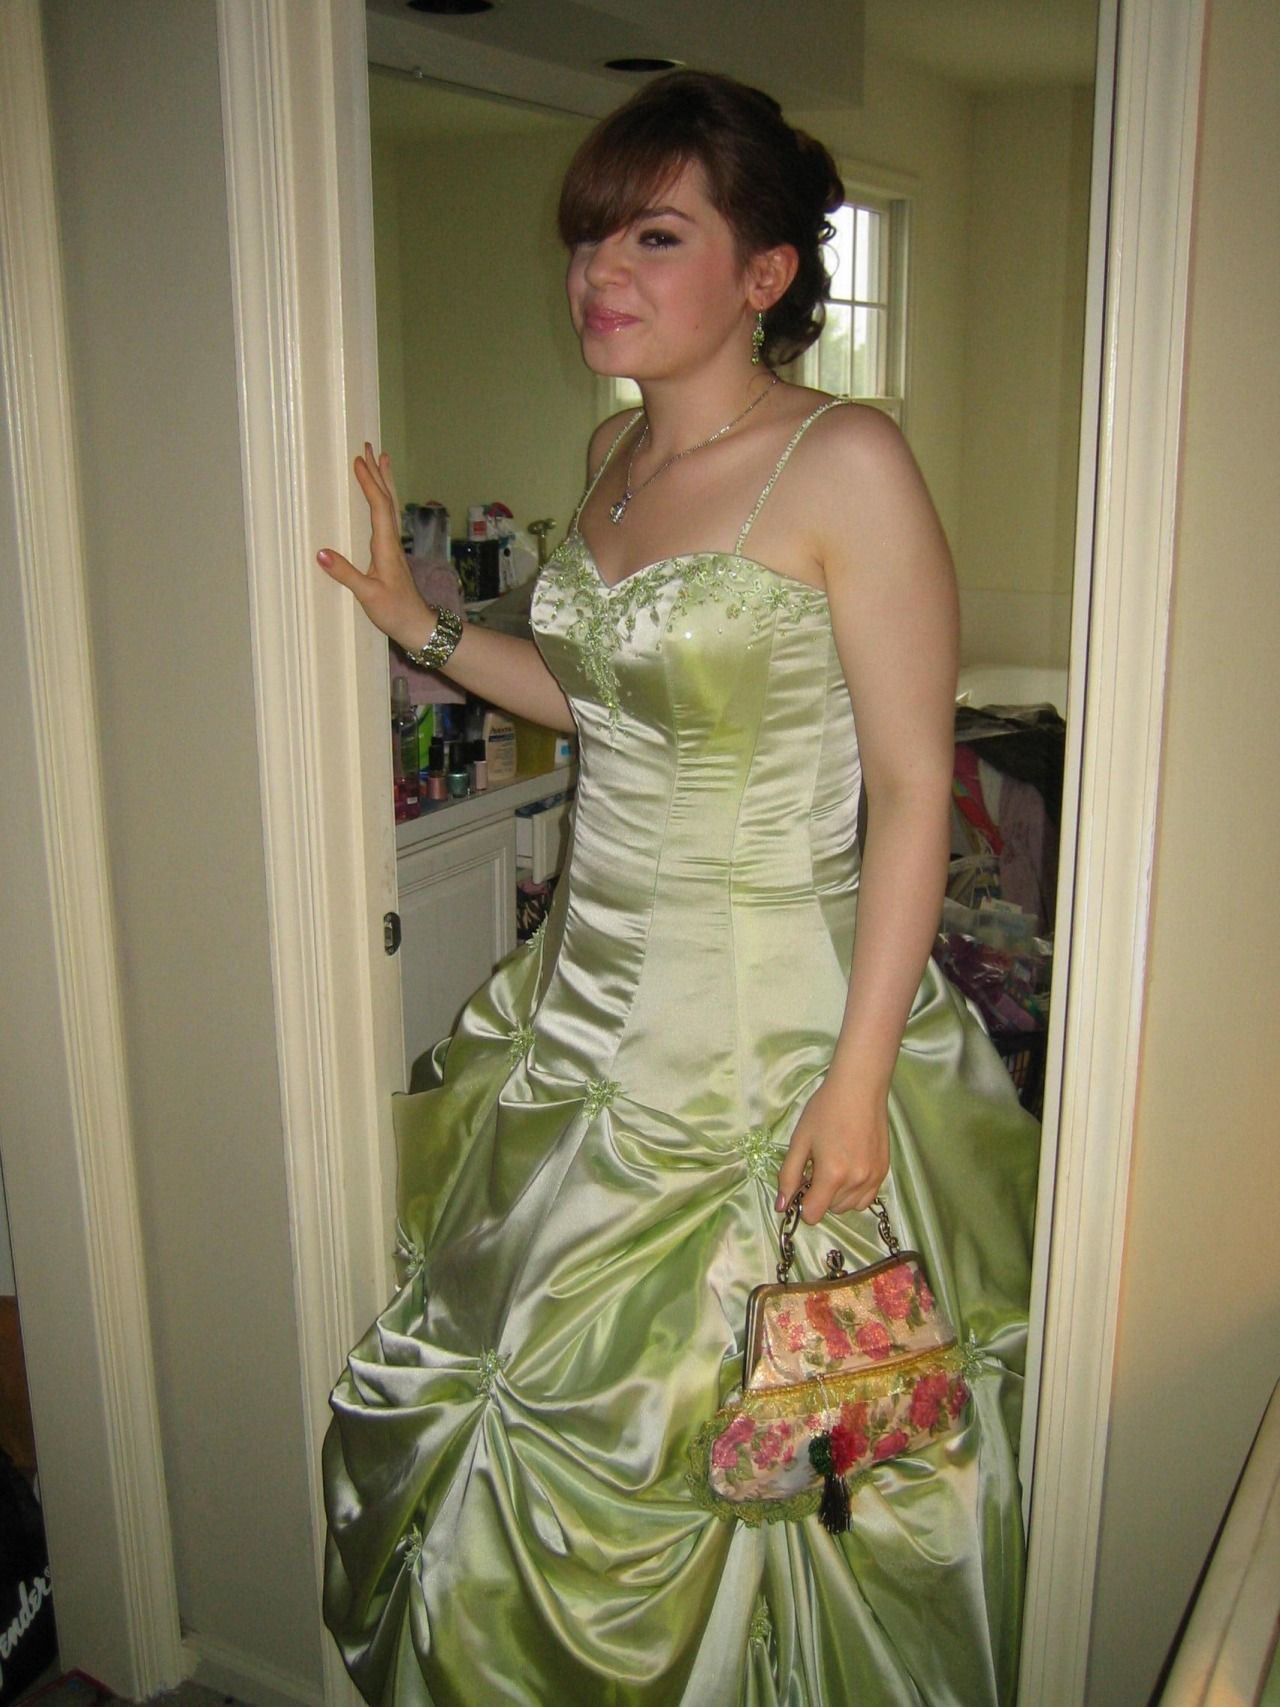 Pin by Jill on Tgirl prom | Pinterest | Transgender, Prom and Teen